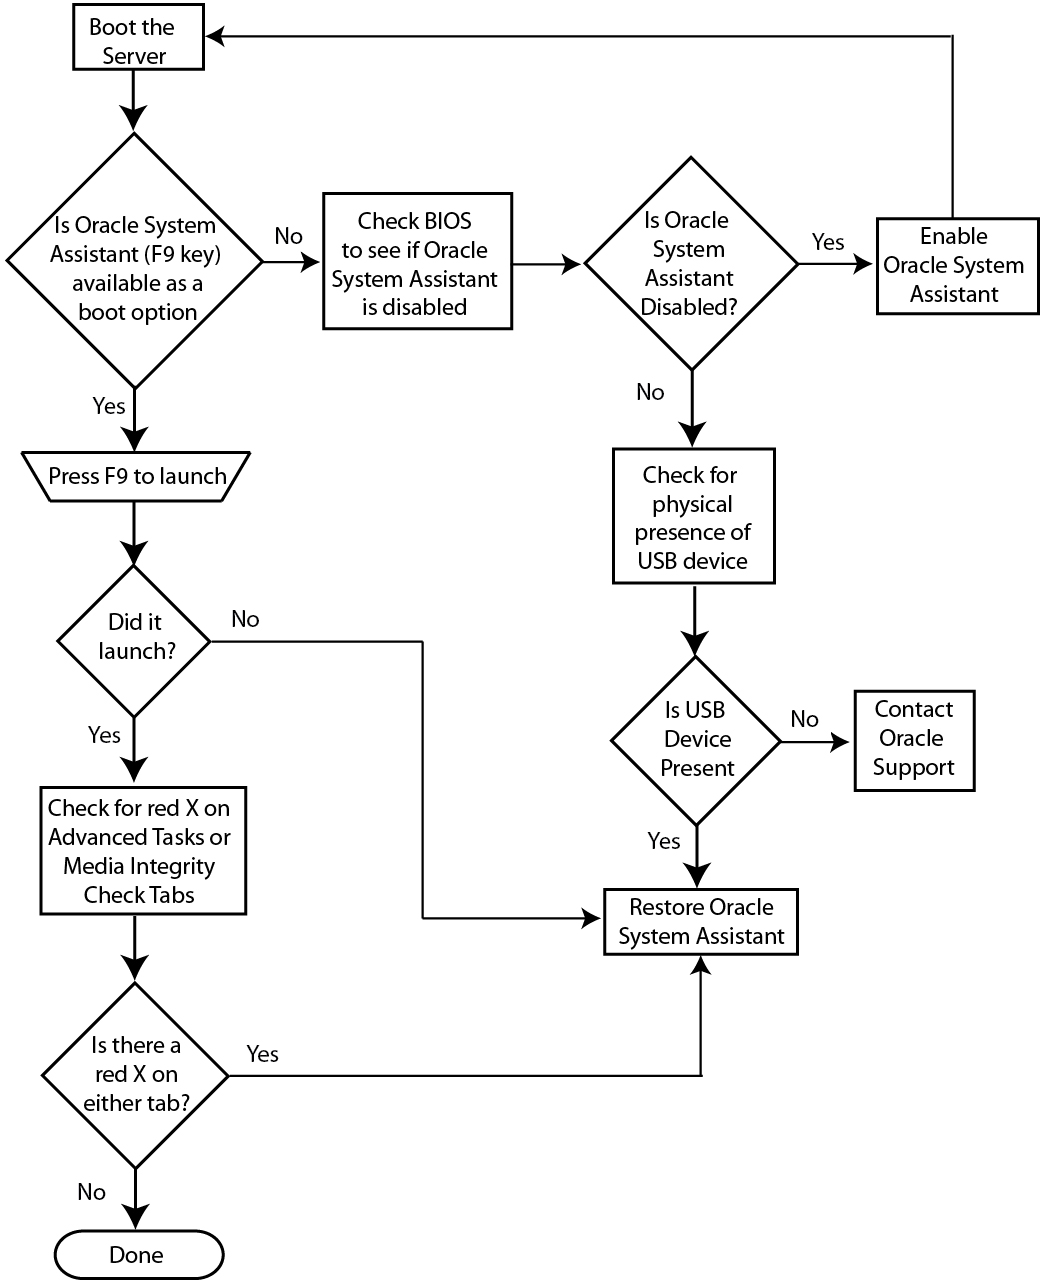 hight resolution of image troubleshooting flowchart for oracle system assistant